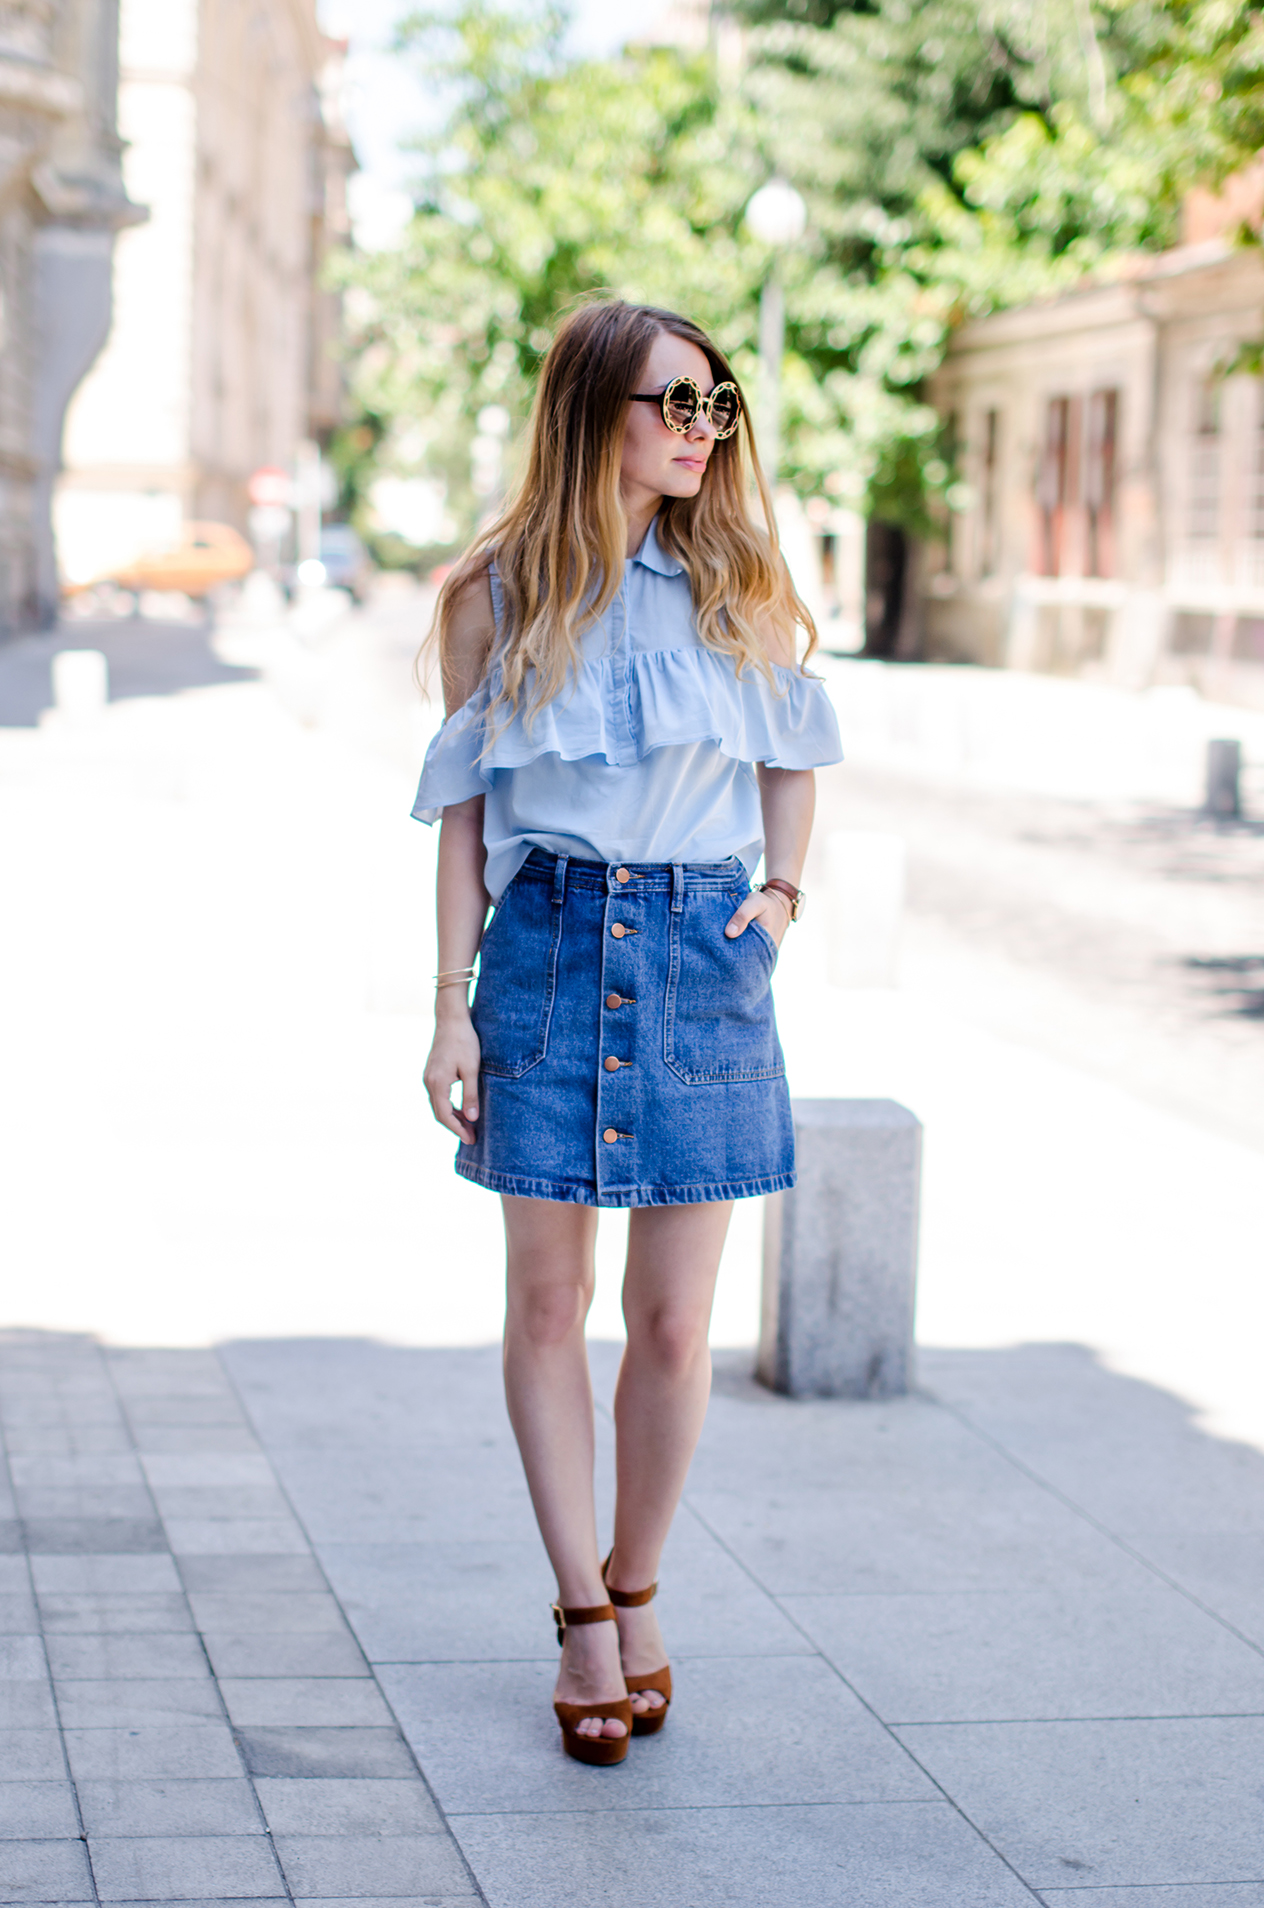 denim-skirt-blue-ruffle-blouse-suede-sandals-daniel-wellington-watch (2)